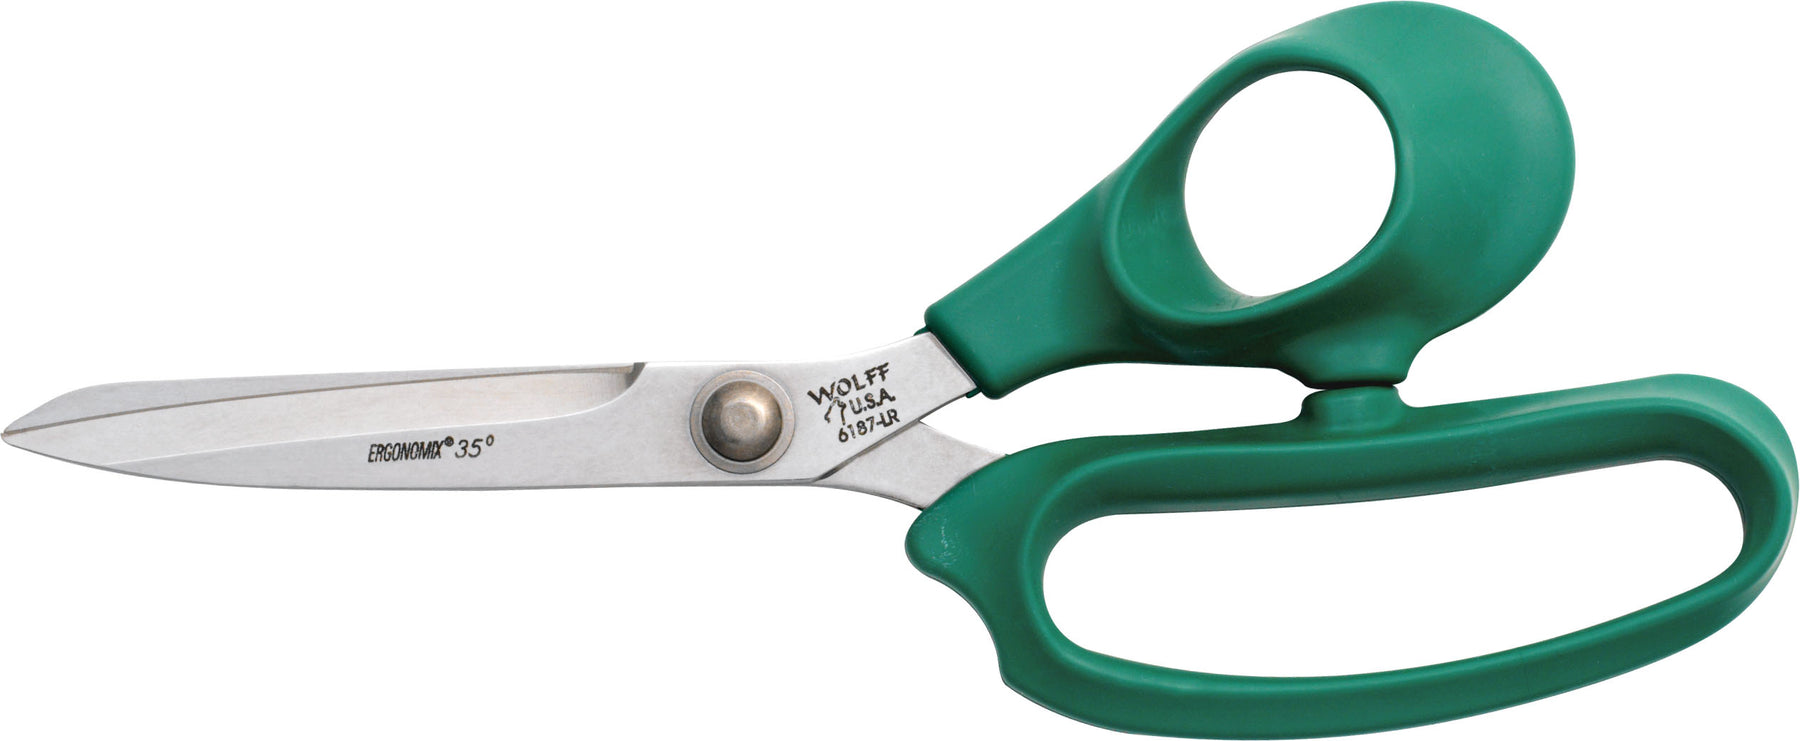 "Wolff® 6187-LR 9"" Ergonomix® Poultry Scissors - 6000 Series Stainless Steel Shears"